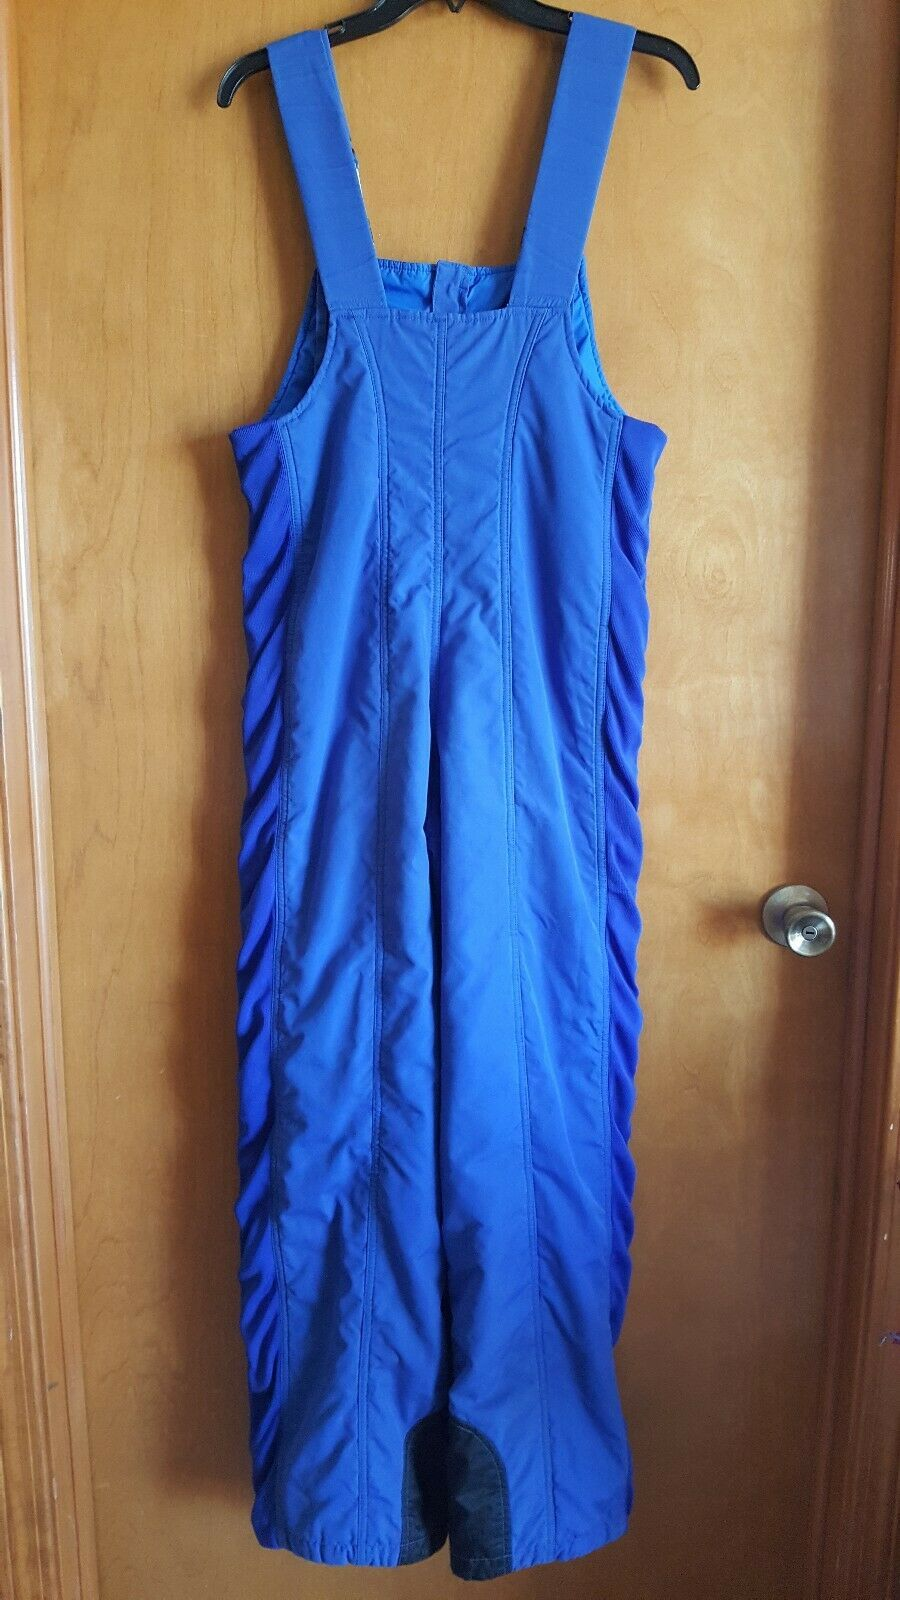 Vintage Womens Snow Ski Bibs Size 10 Blue by Powderhorn Mountaineering